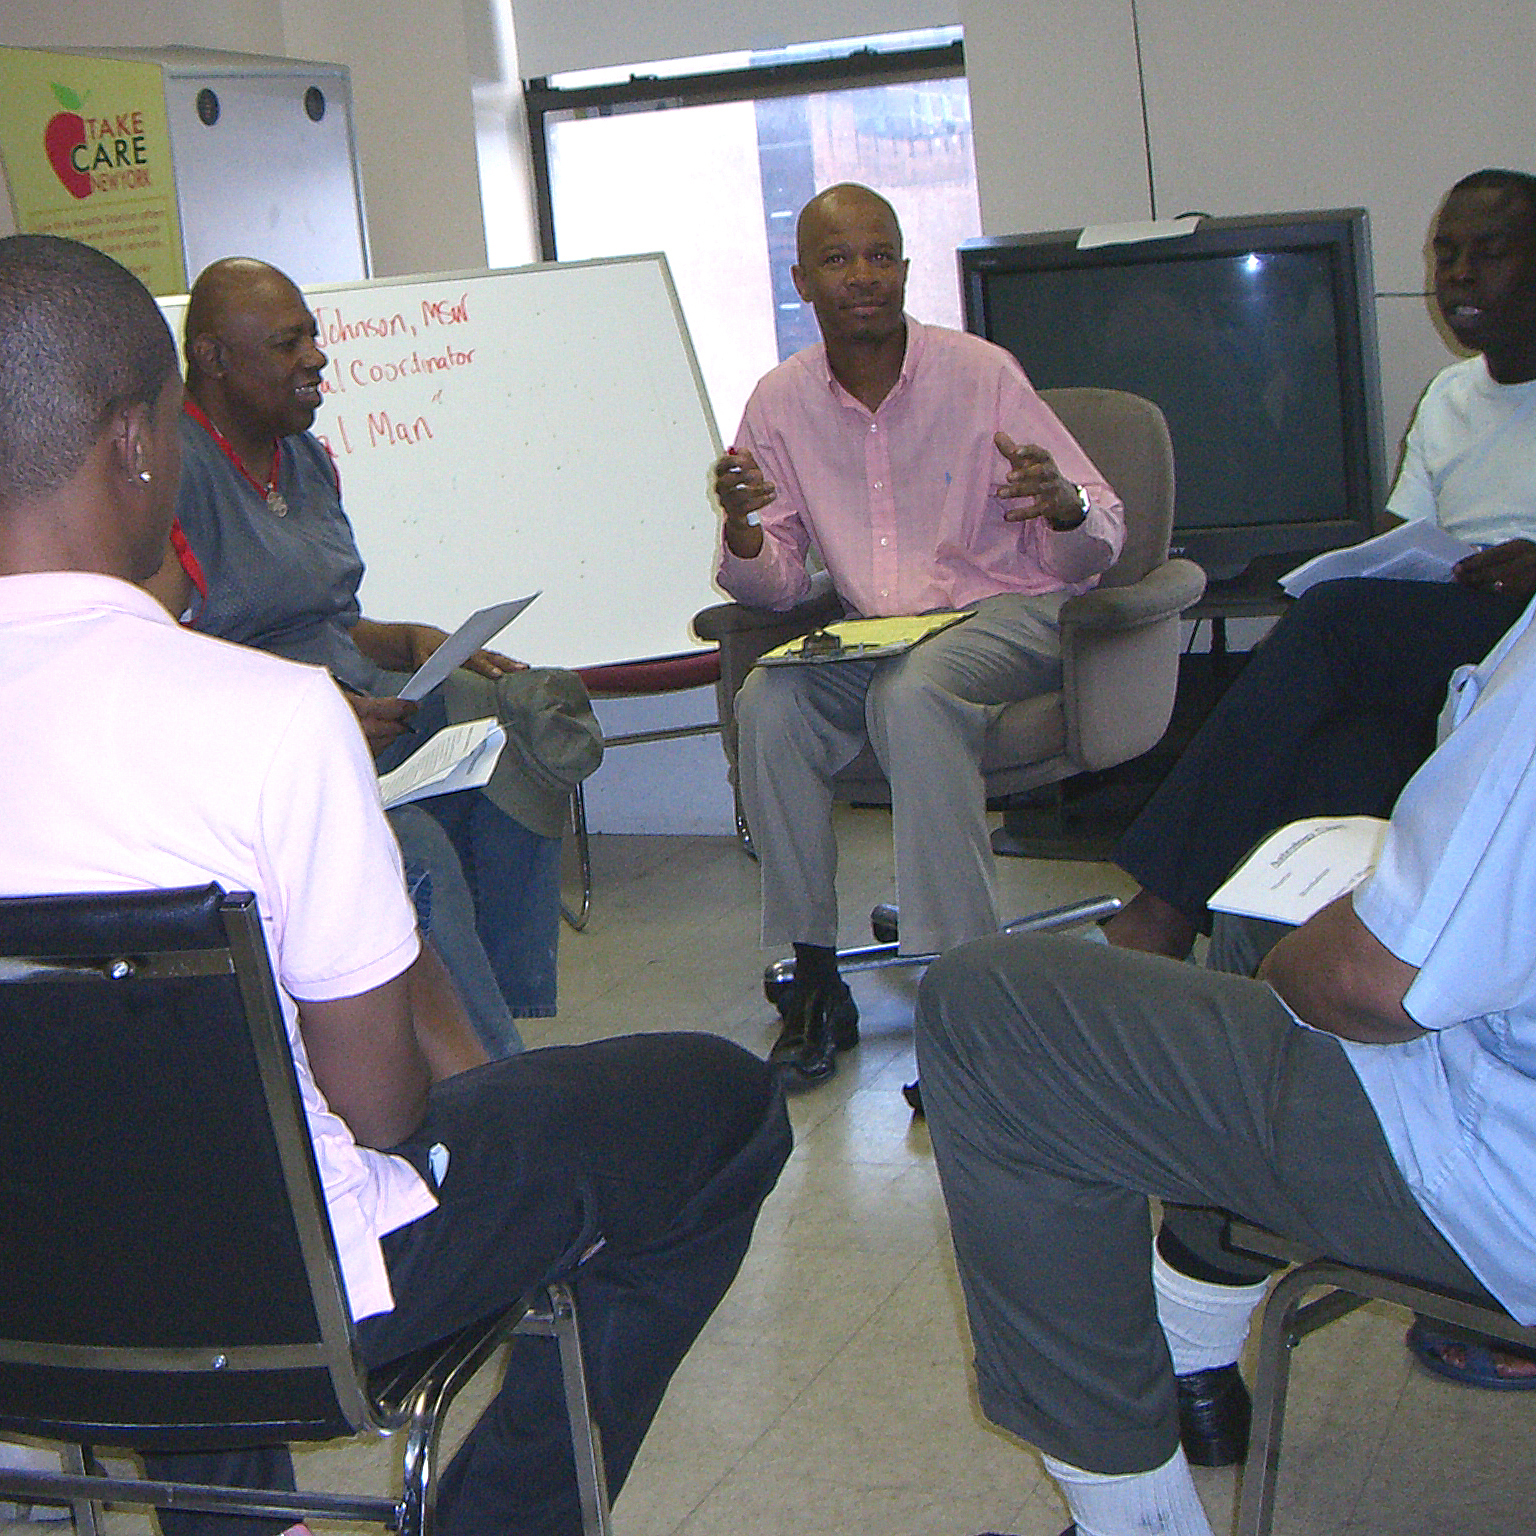 Men sitting in a circle and talking